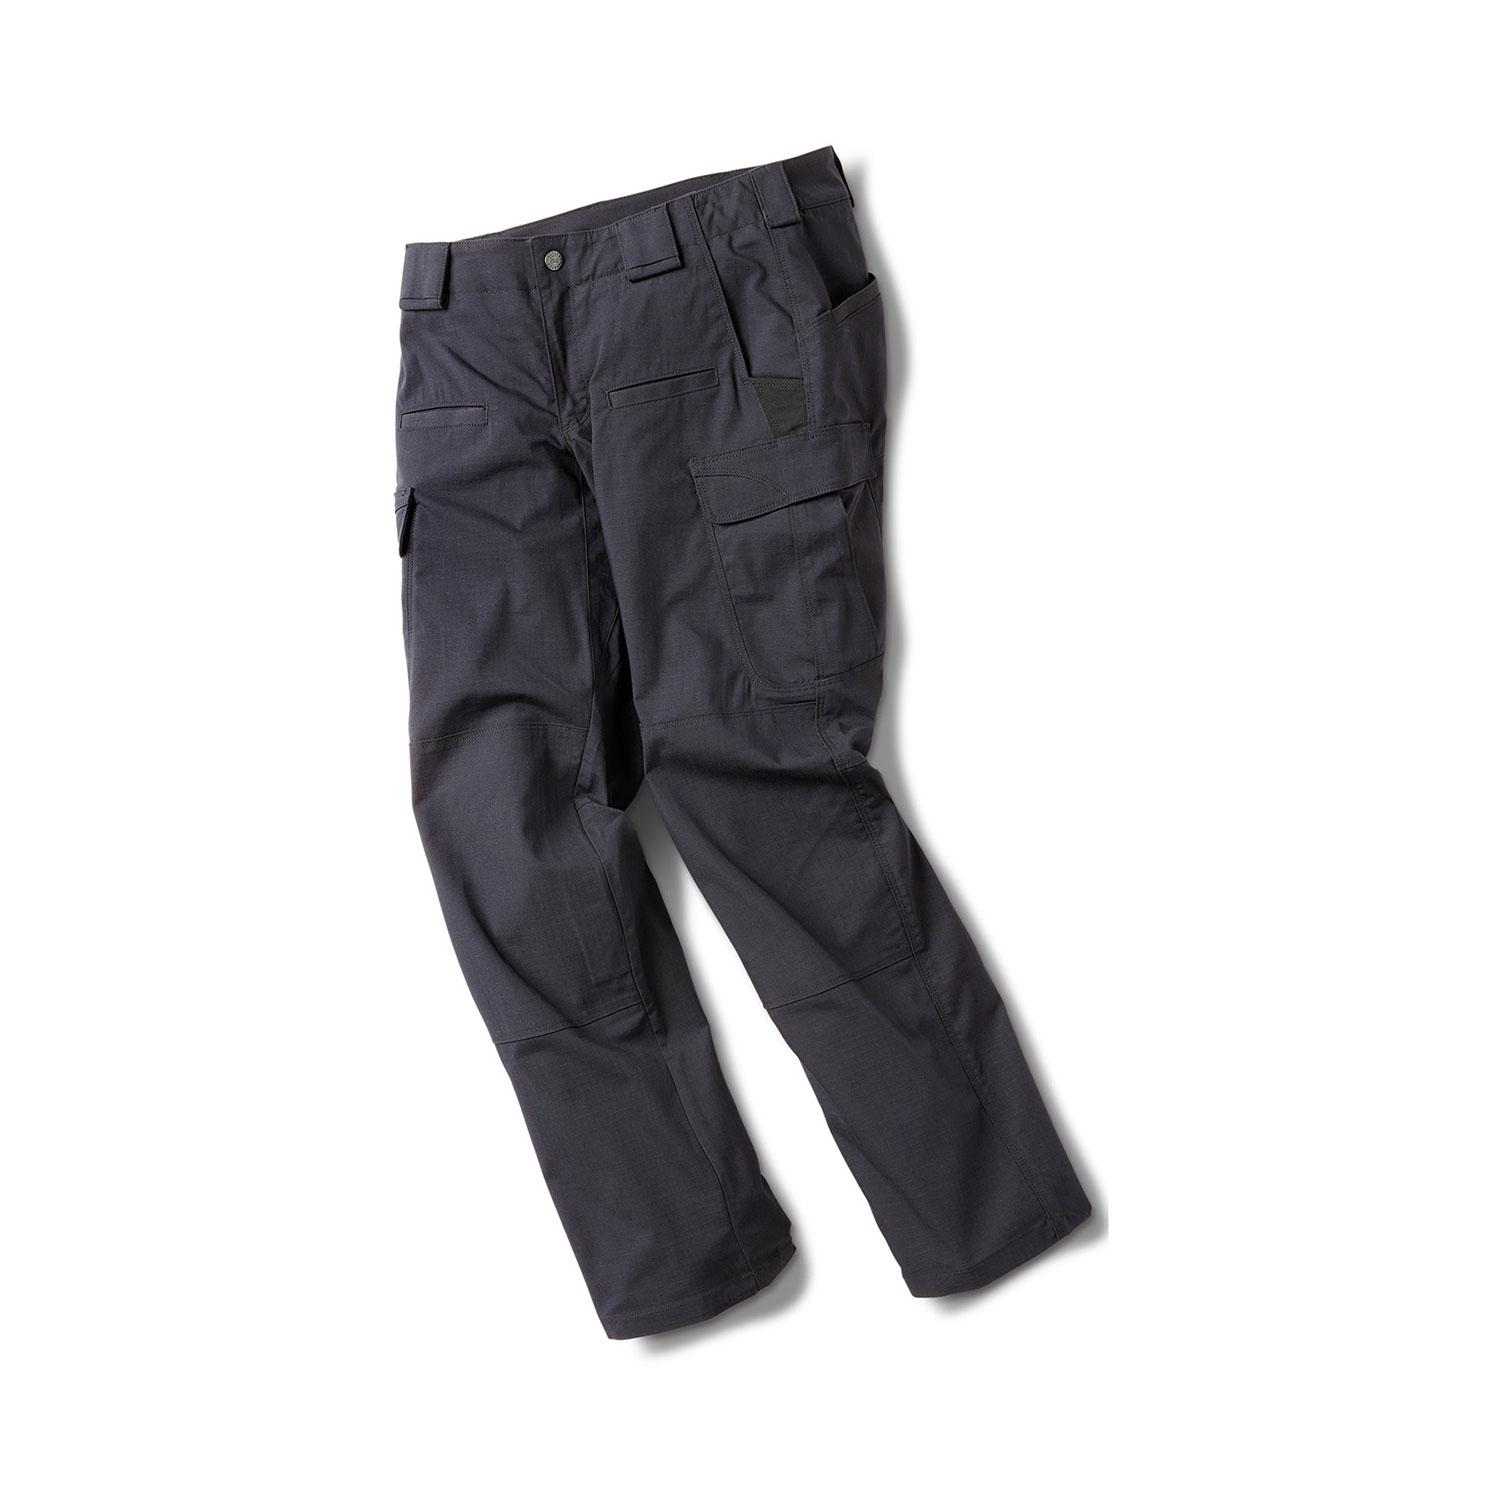 5.11 Tactical Women's NYPD Ripstop Stryke Pant